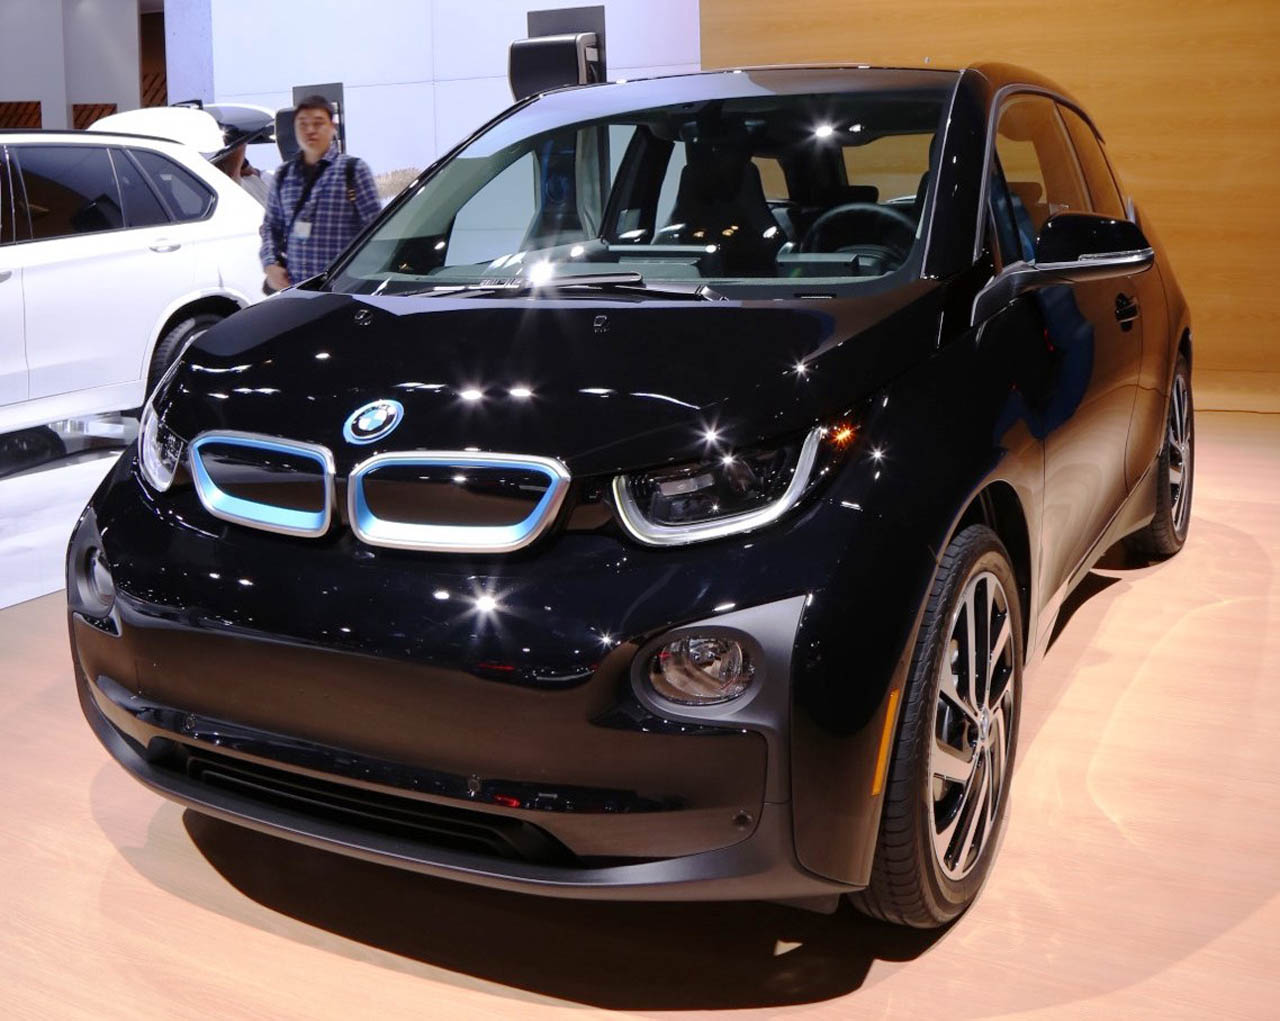 1BMW-i3-Shadow-Sport-Edition-LA-Auto-Show-2-e1447883190956